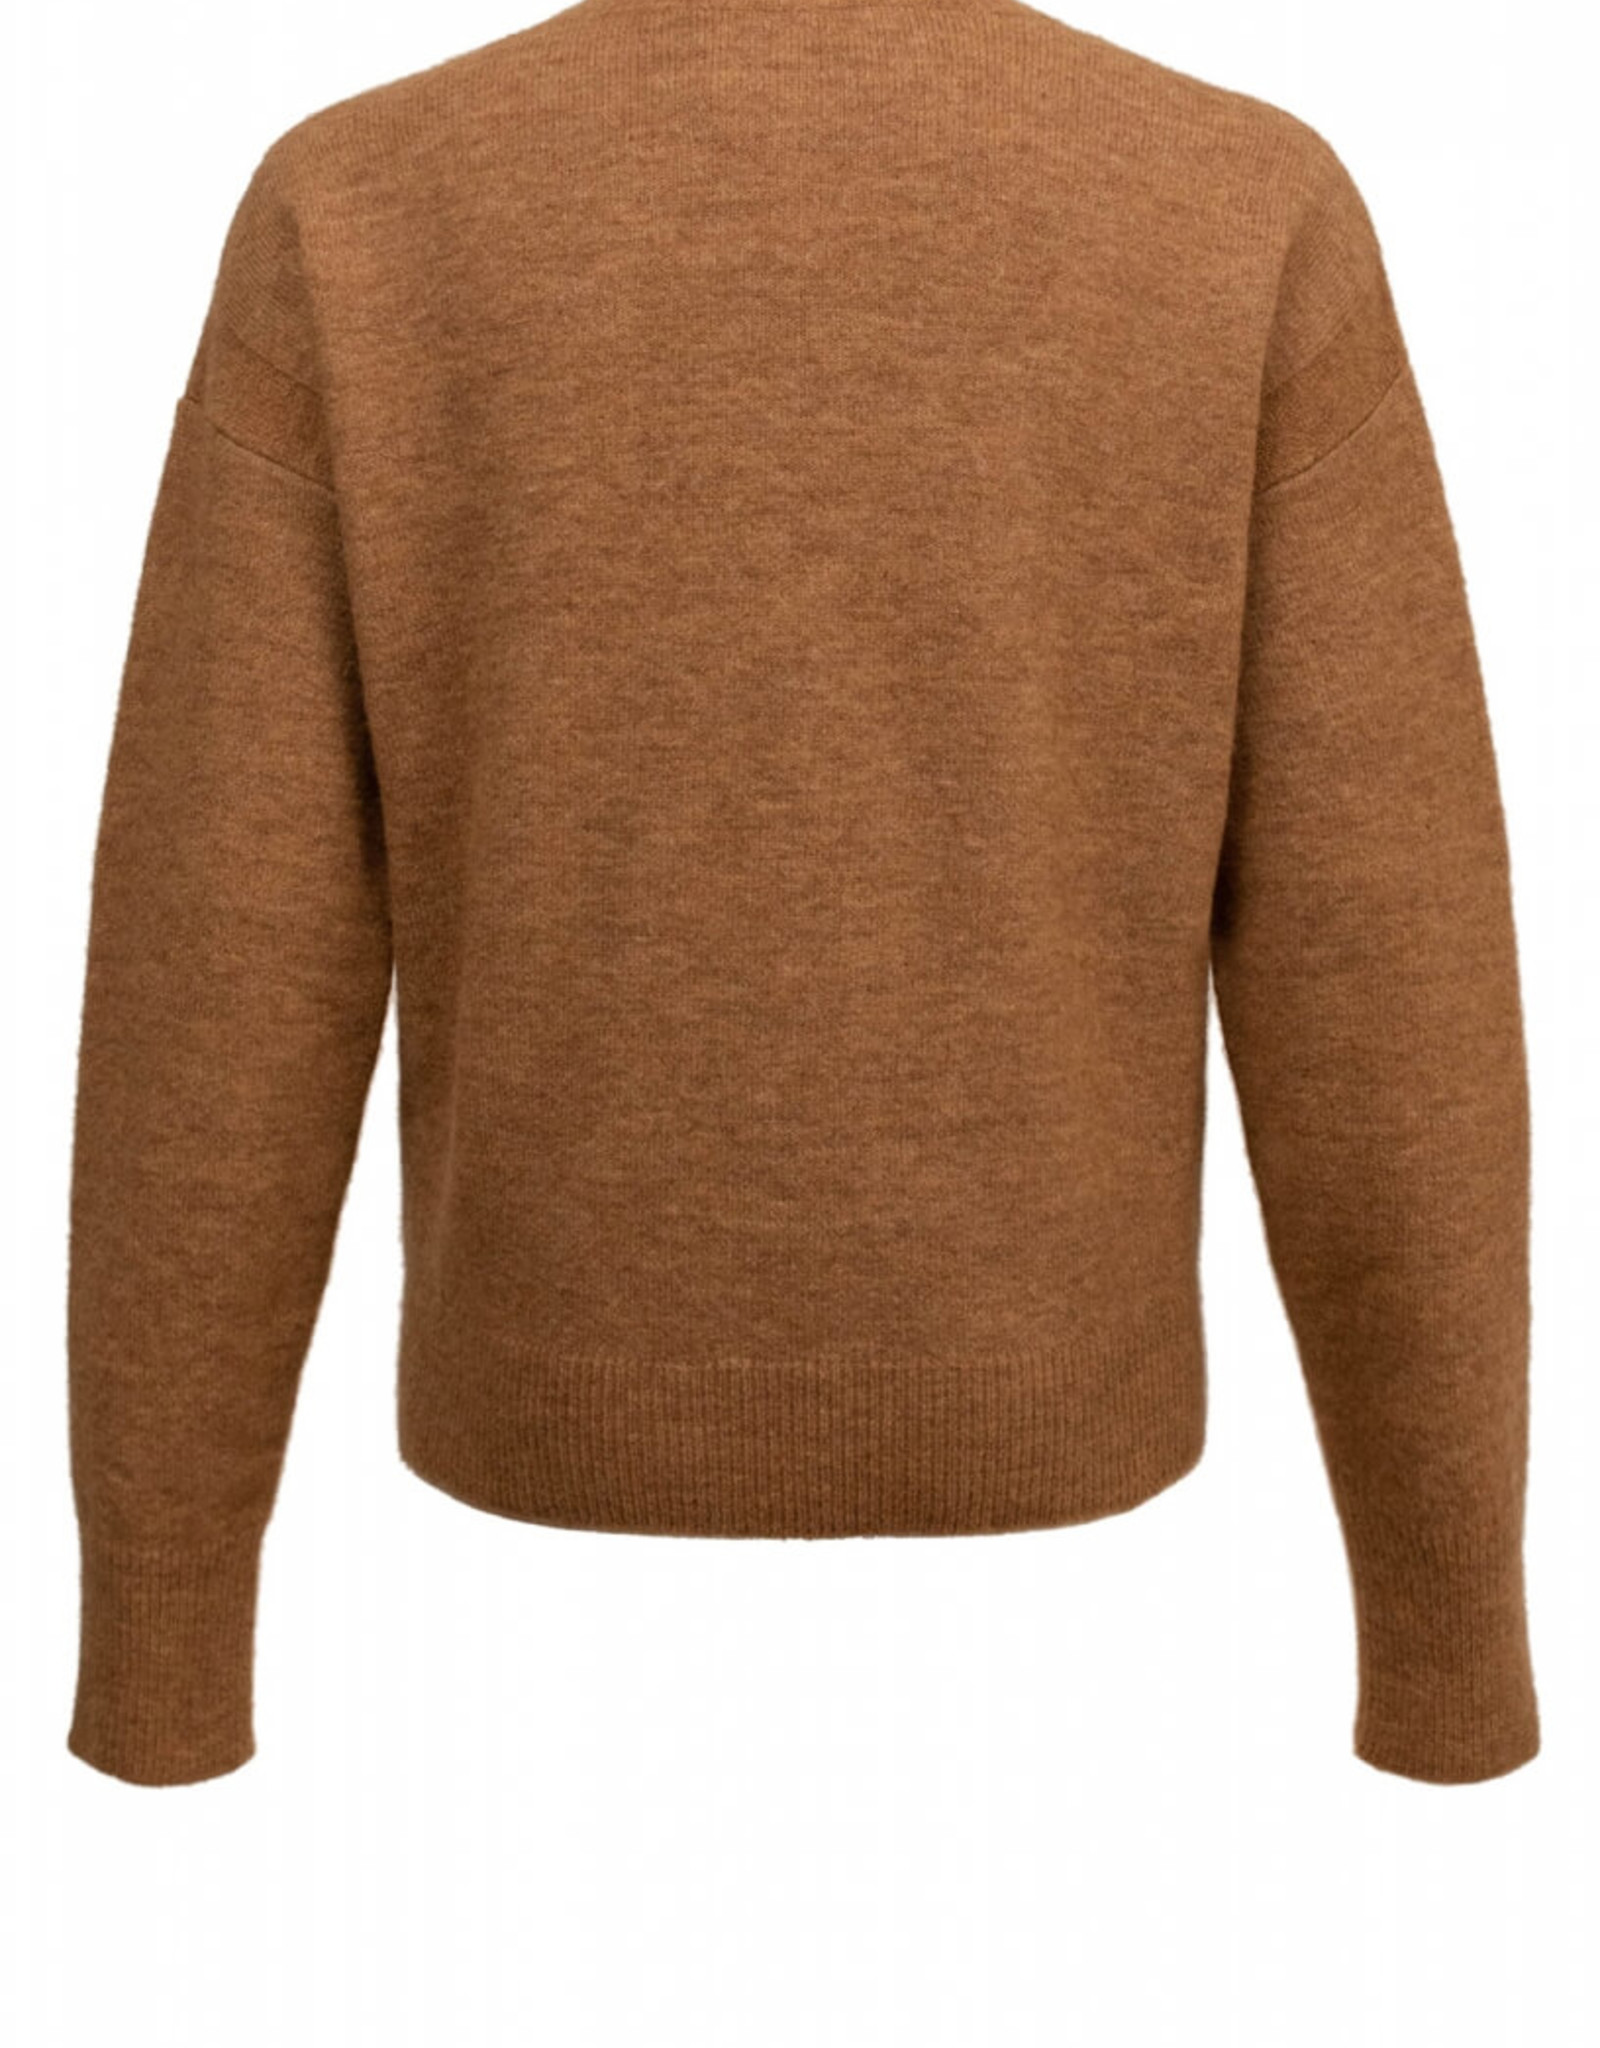 Moscow Pullover Andrew Brandy